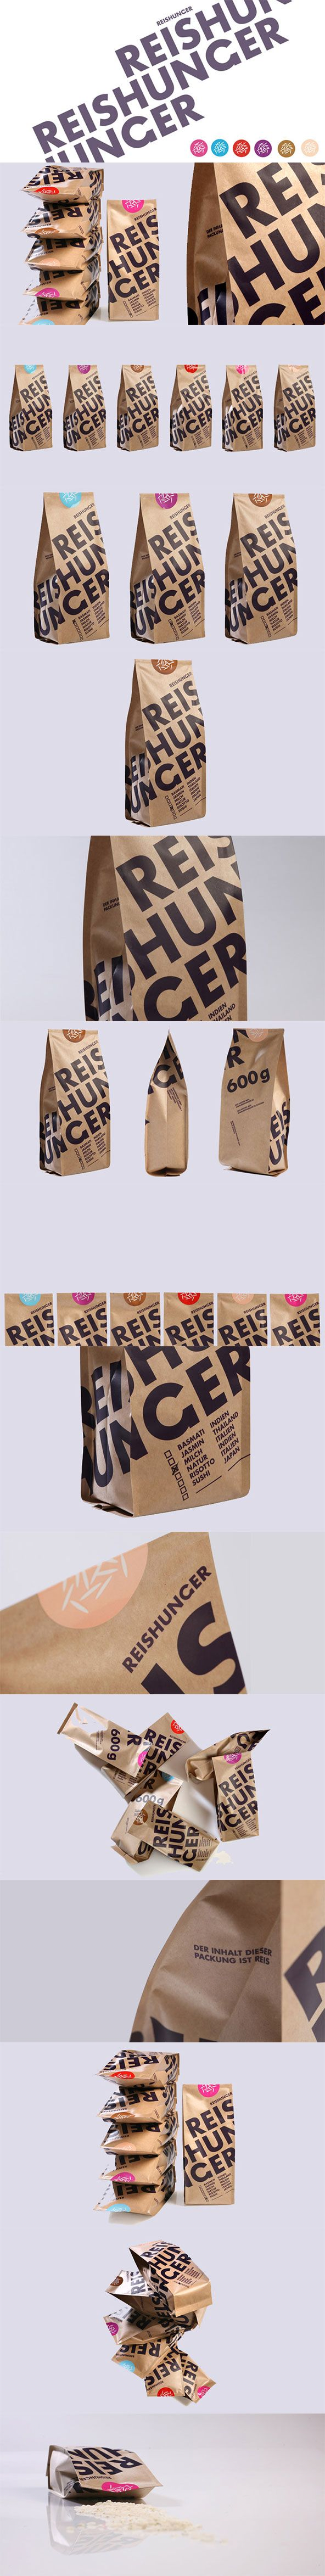 Reishunger. Now I know this one is rice #packaging PD